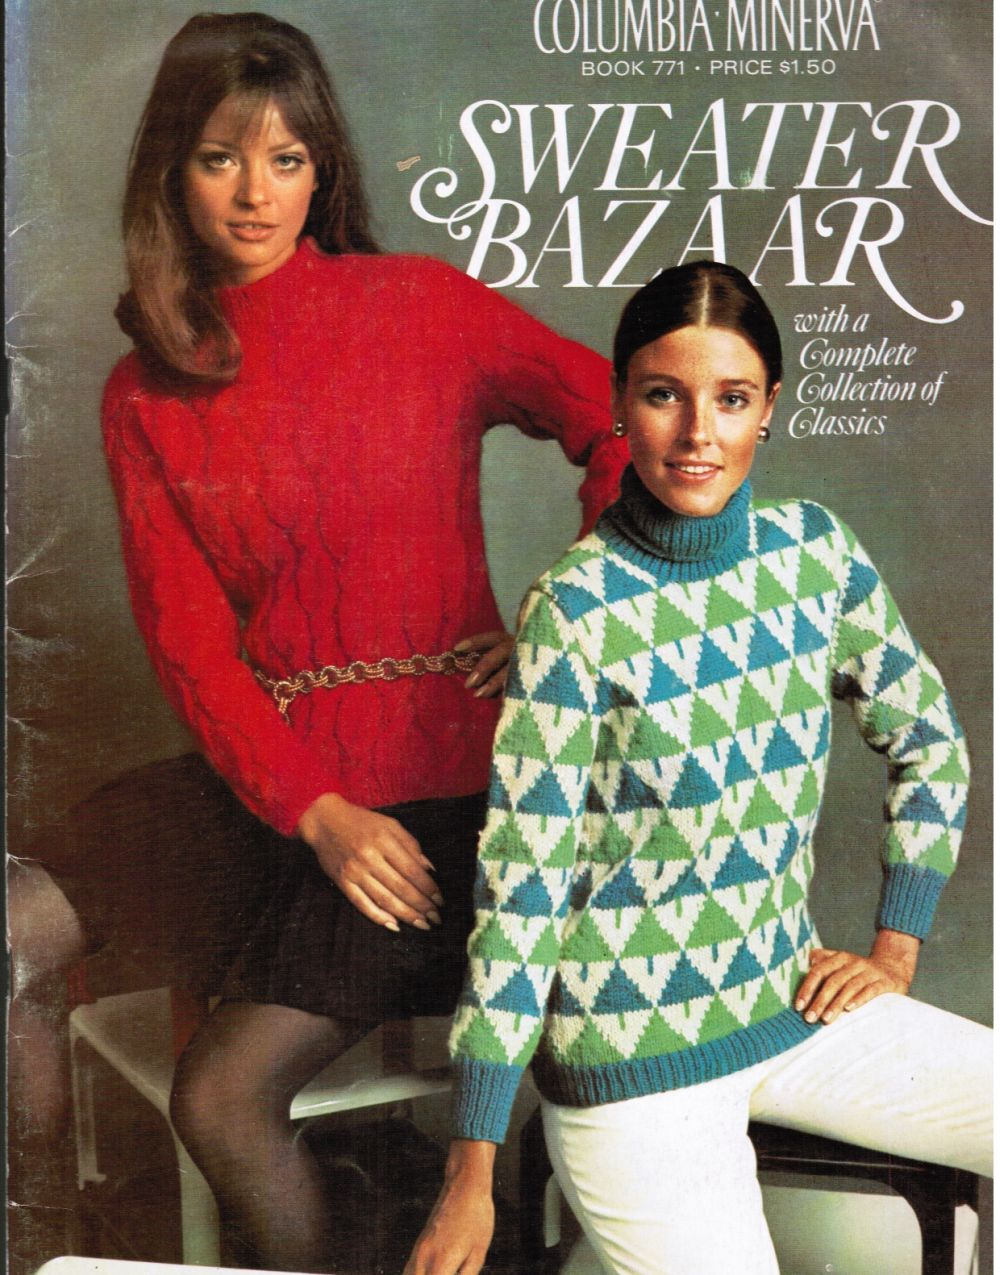 Image for Sweater Bazaar with a Complete Collection of Classics